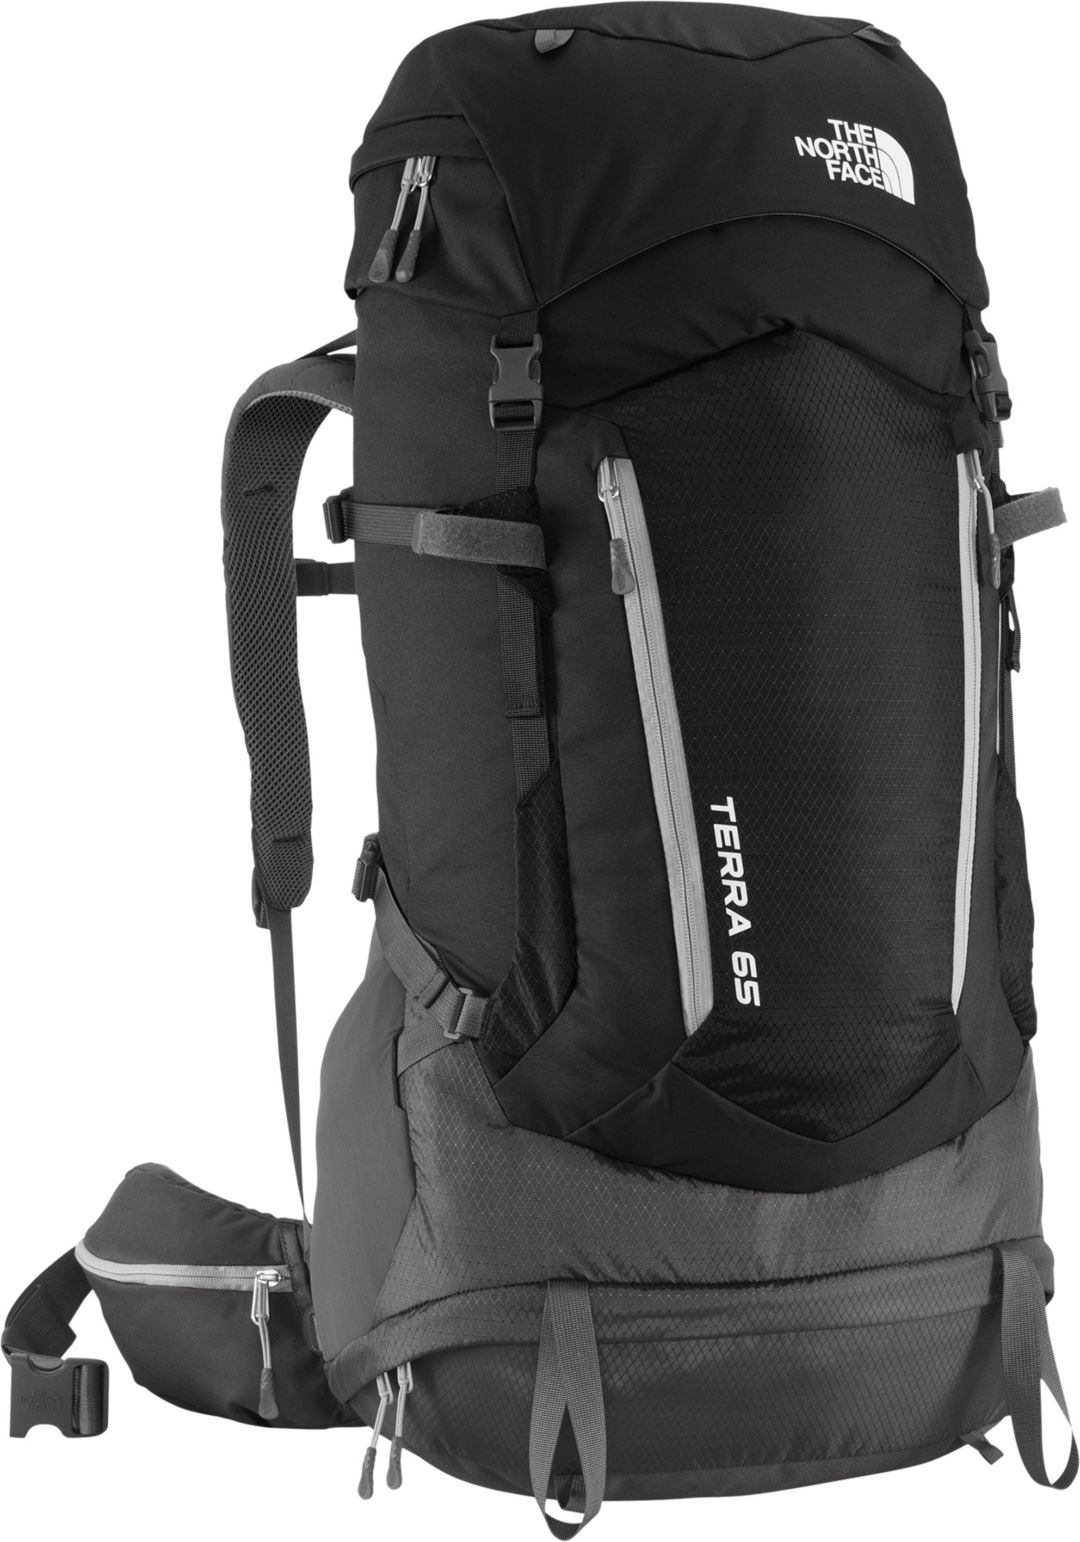 new styles 8ede8 d023d The North Face Terra 65L Internal Frame Pack - Prior Season